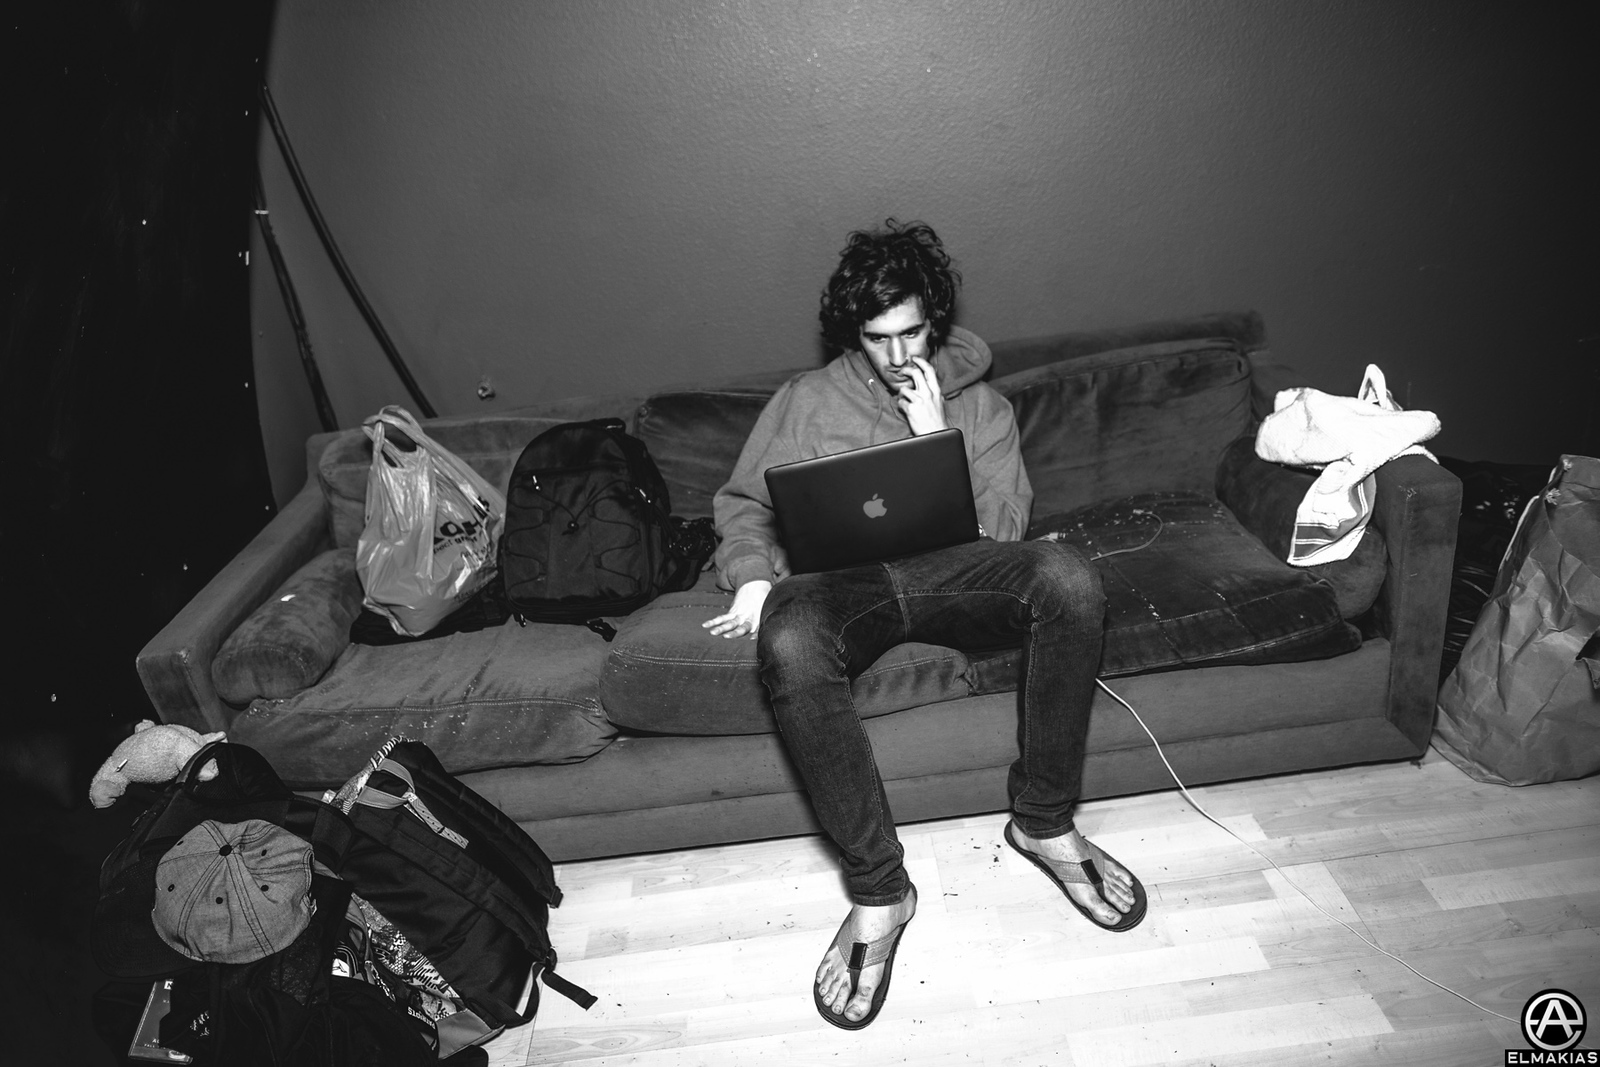 Dan of Real Friends waiting to go to stage